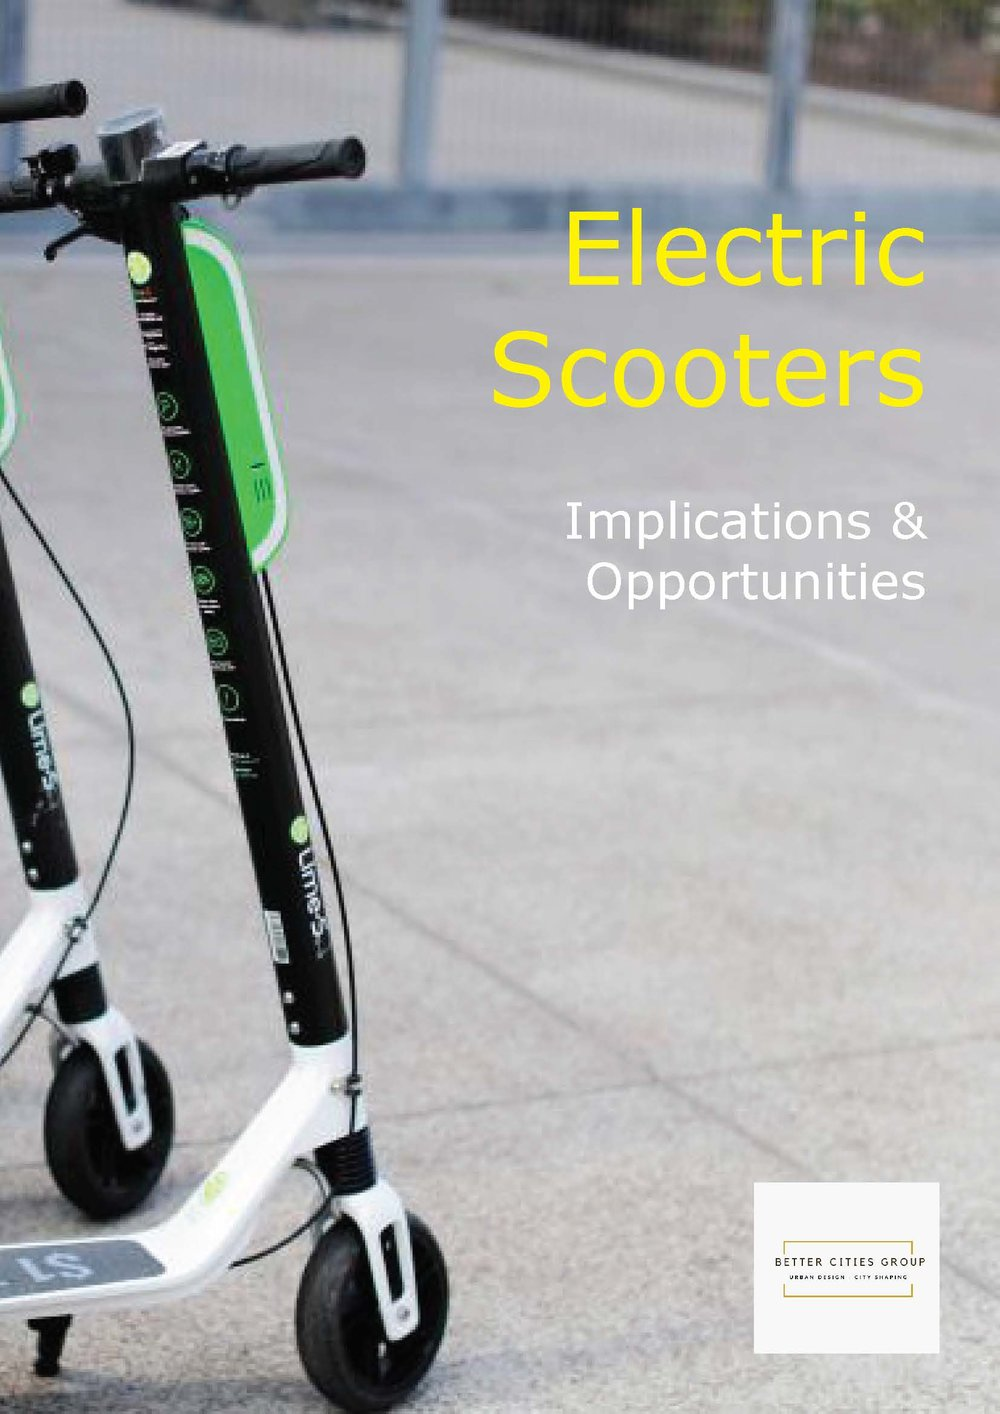 Electric Scooter Hire Services - The Better Cities Group has been exploring the latest instalment in the shared transport technology evolution - electric scooter hire services - how should Australian cities prepare?